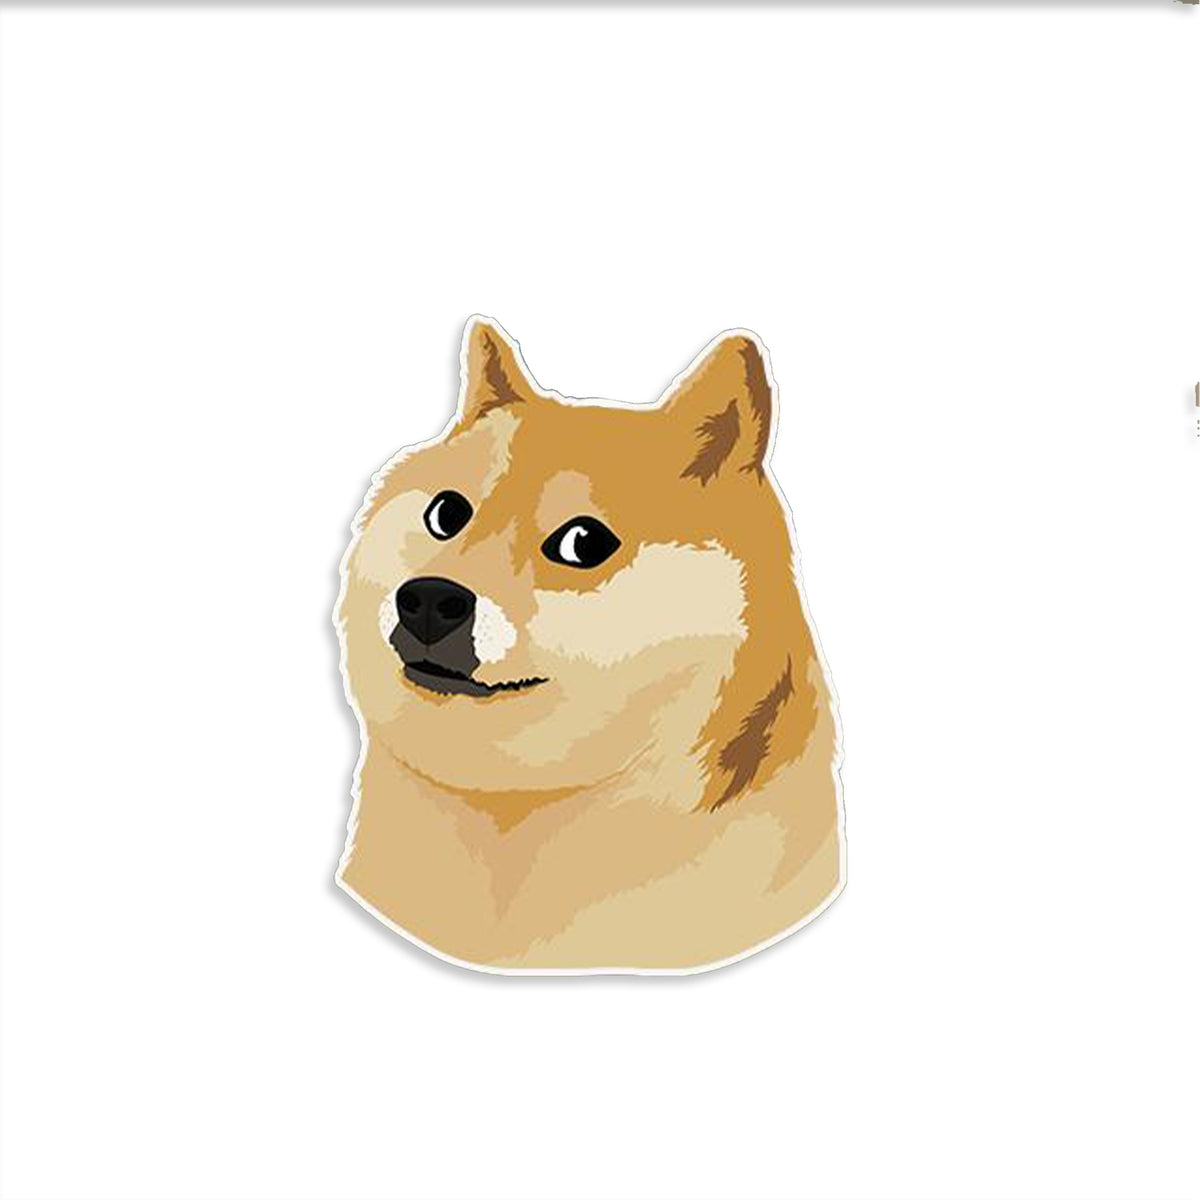 Doge Meme | Sticker